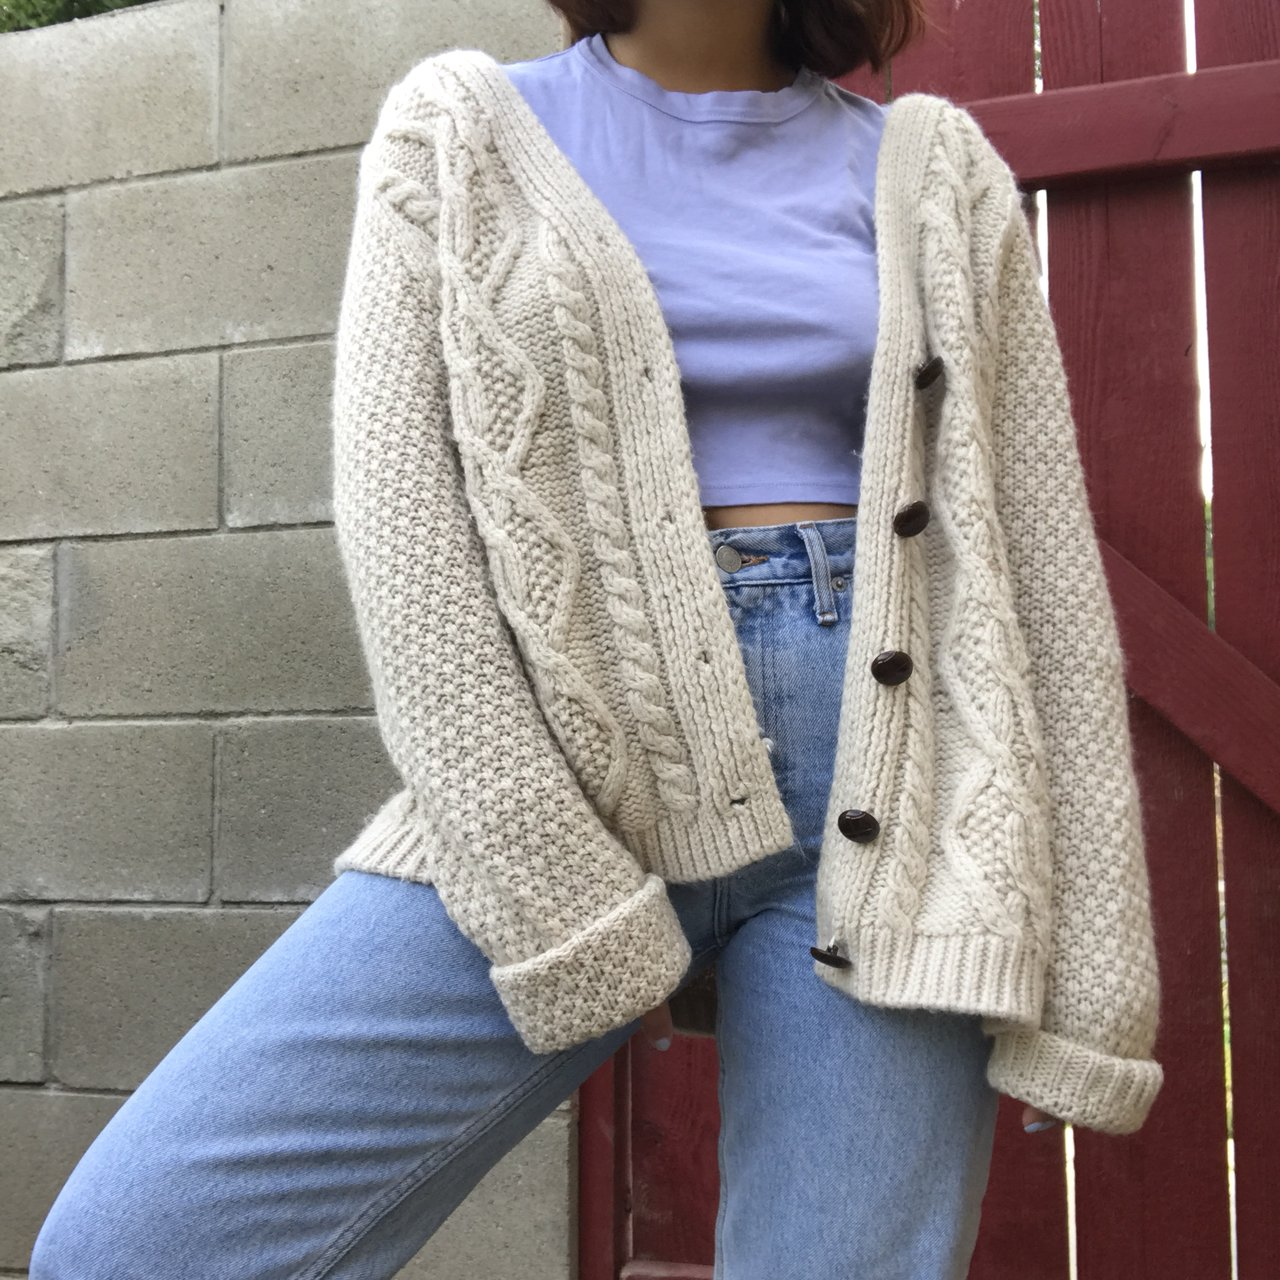 dd7cd5f10a beige cream knit cardigan from urban outfitters super cozy - Depop